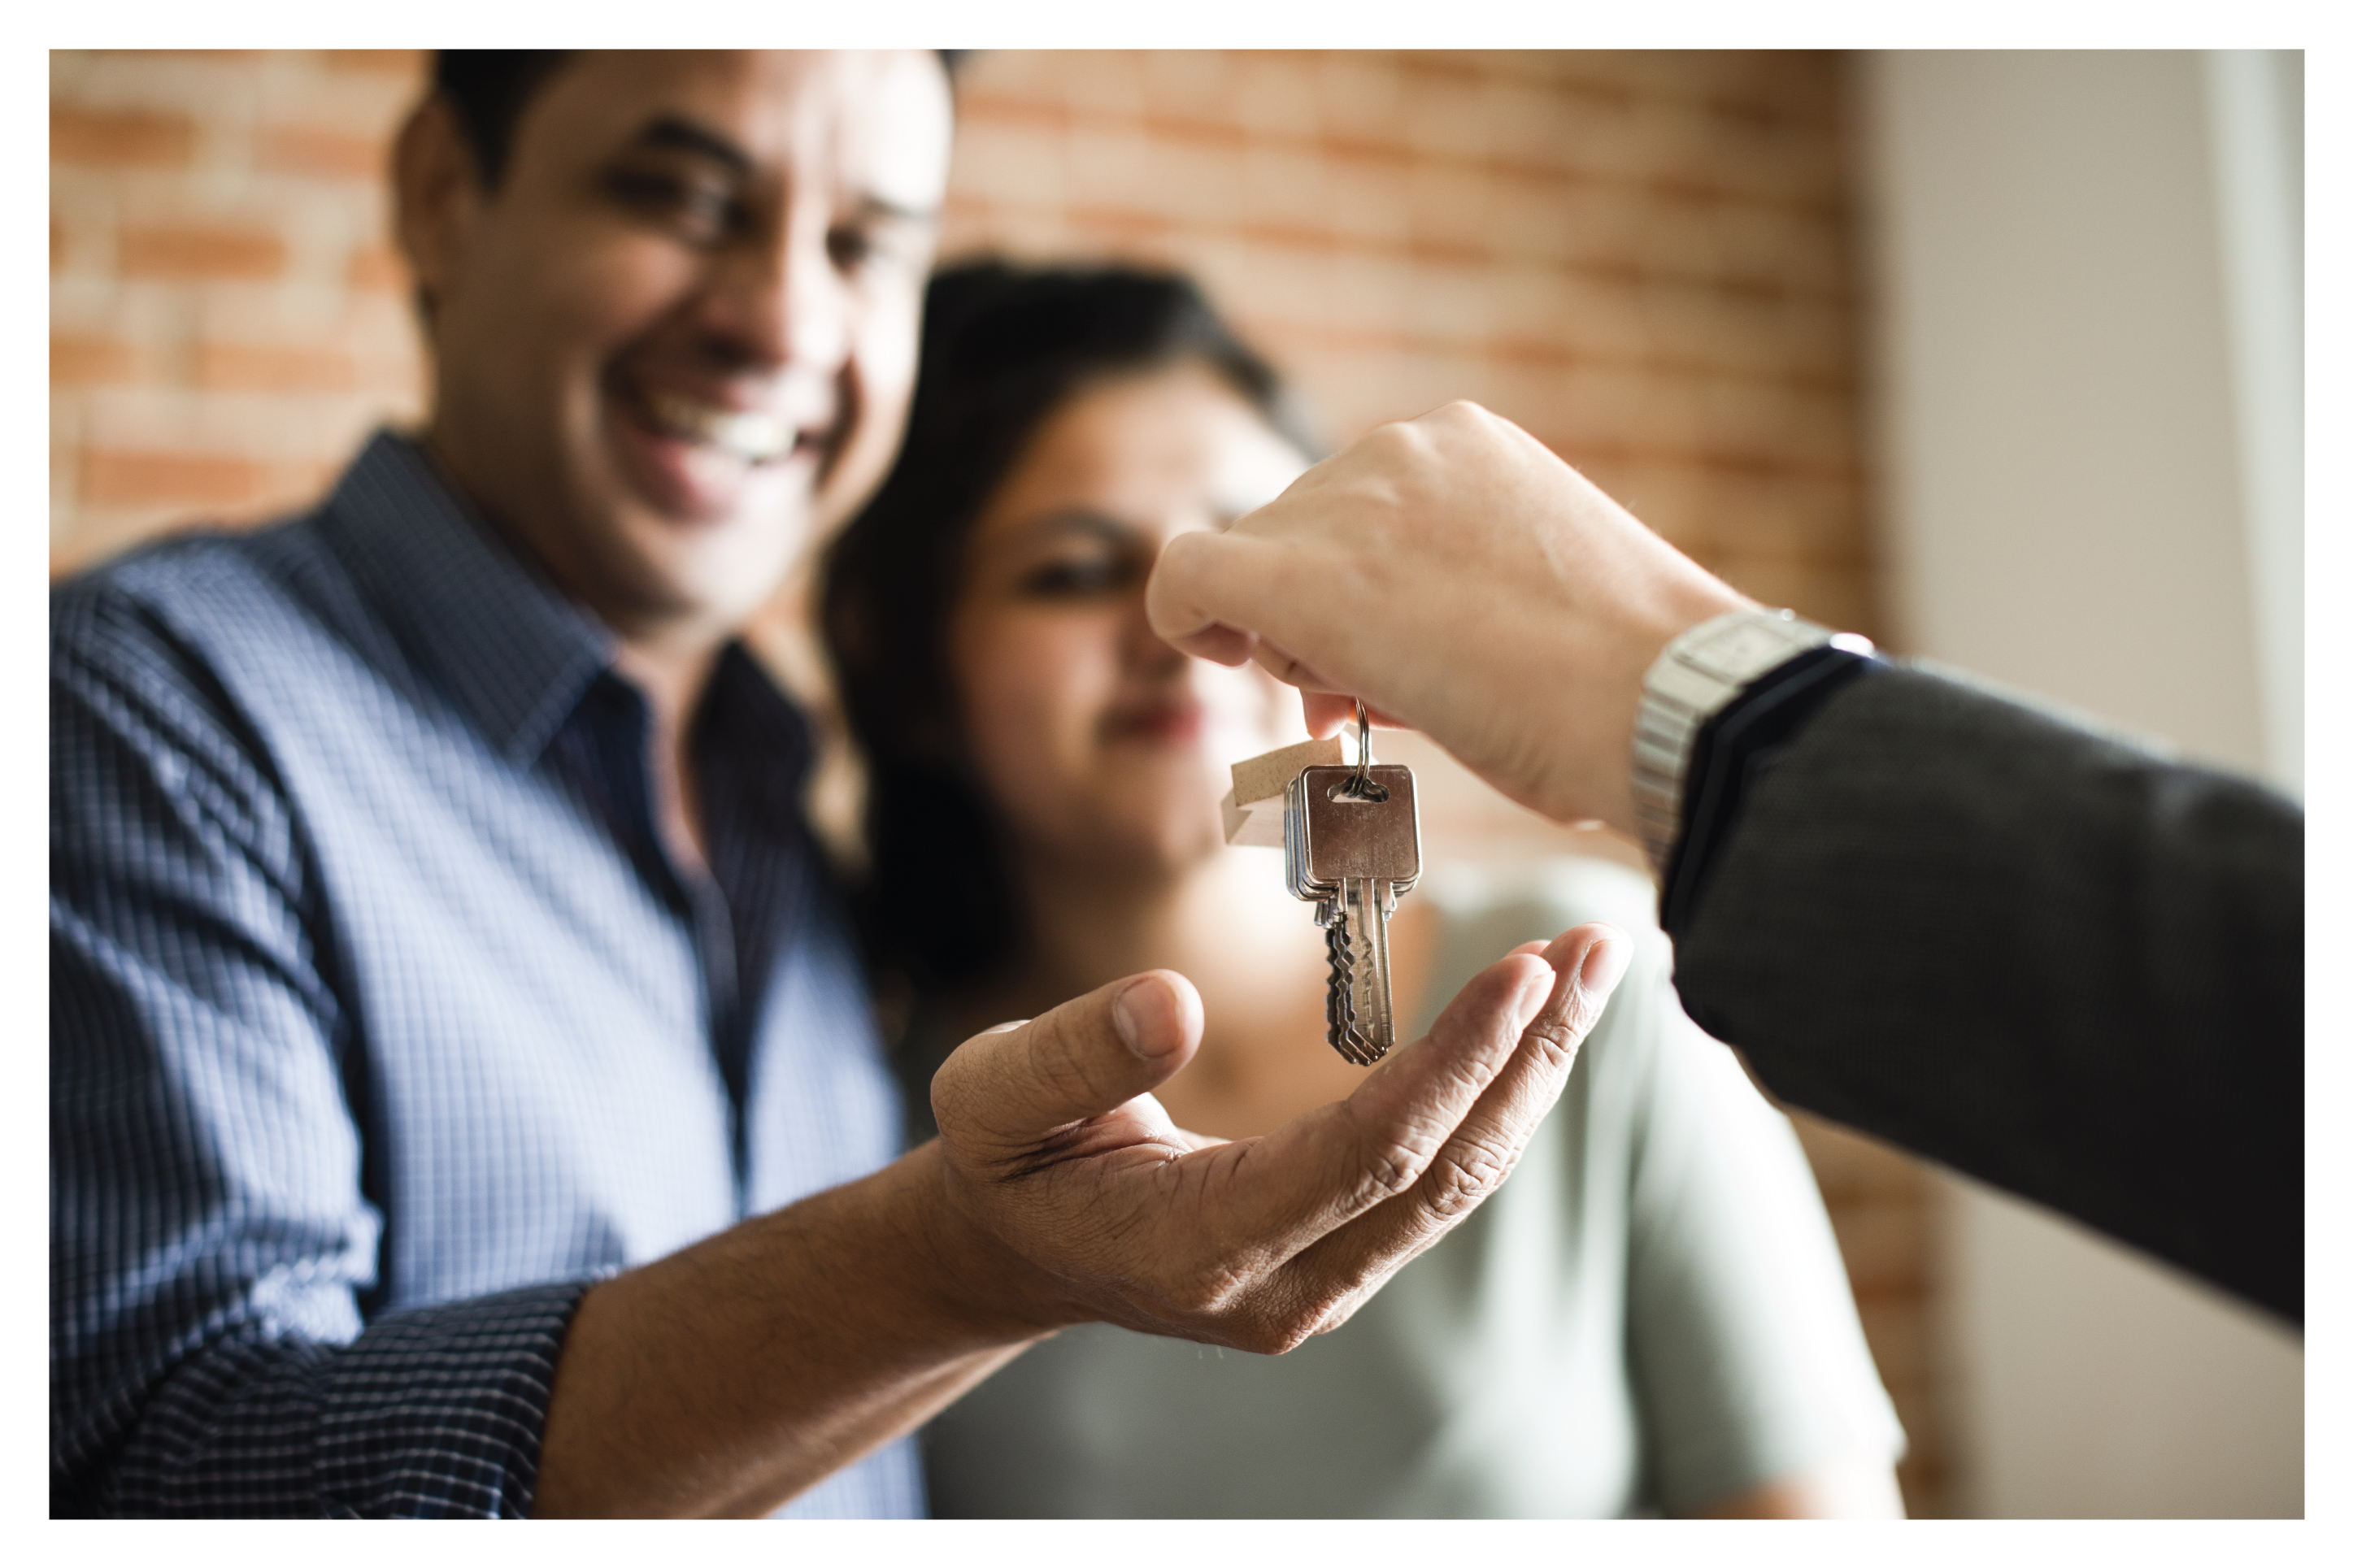 How Do You Know When You're Ready to Buy a House?